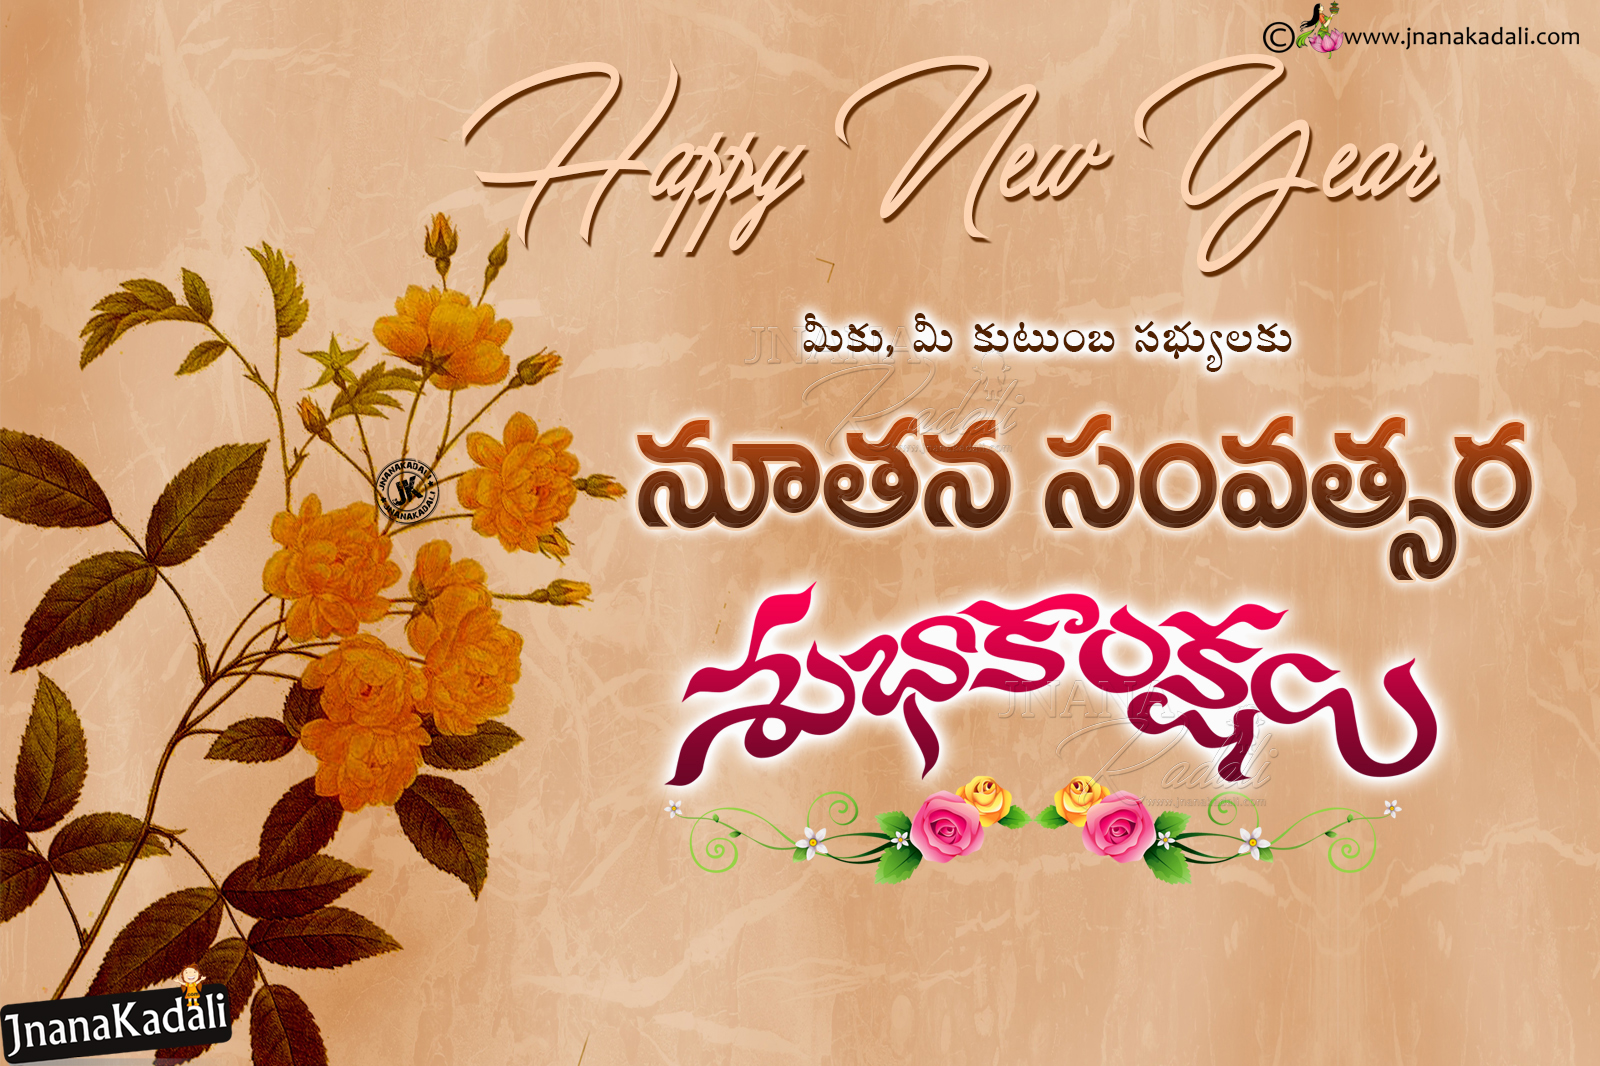 telugu new year newyear cooltest info telugu happy new year 2018 wishes quotes messages greetings and